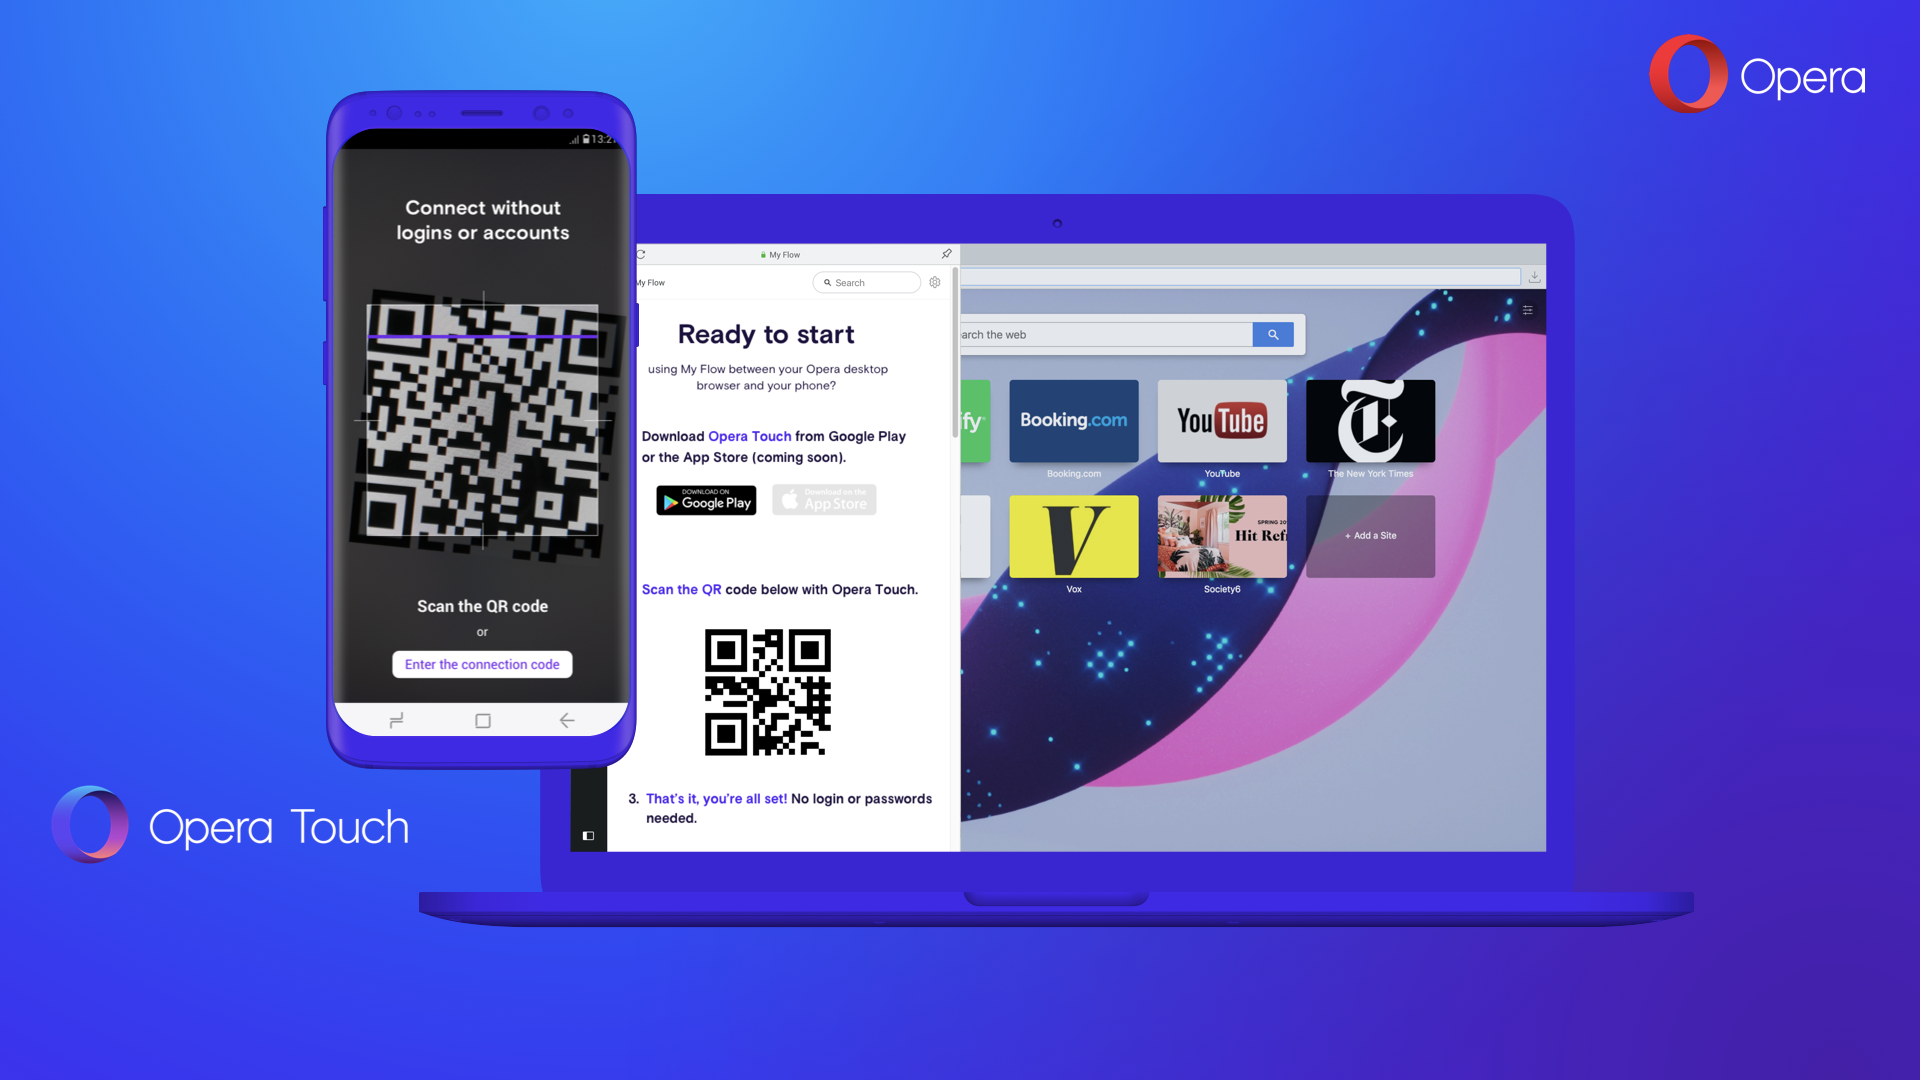 Opera introduces Opera Touch, a cool new mobile browser